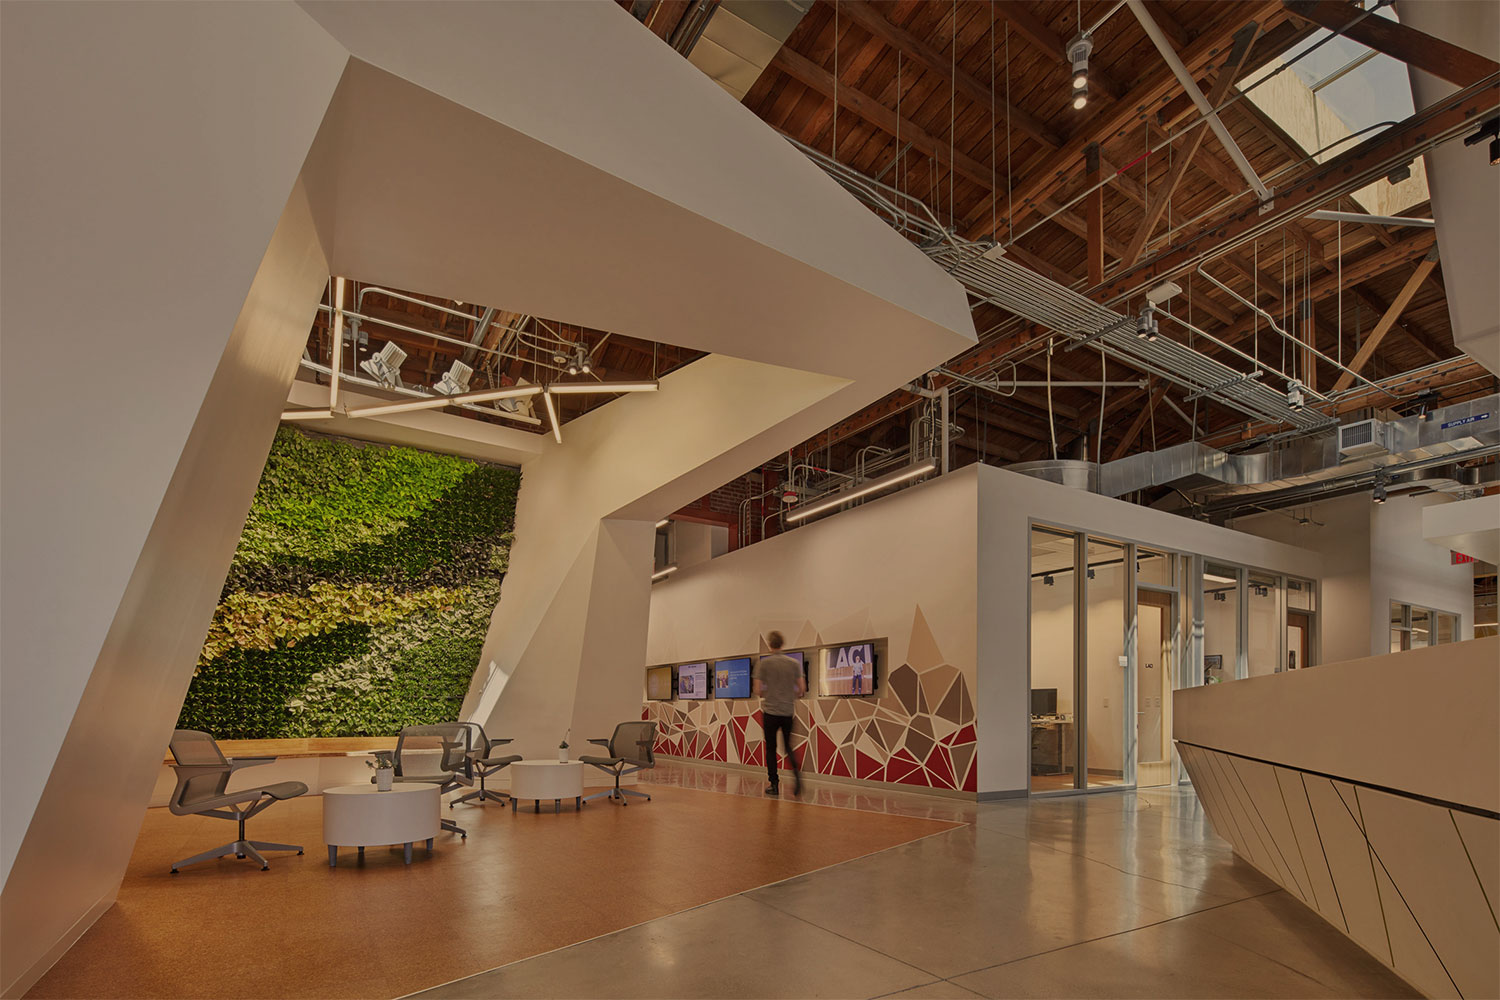 la kretz innovation campus design clean technology